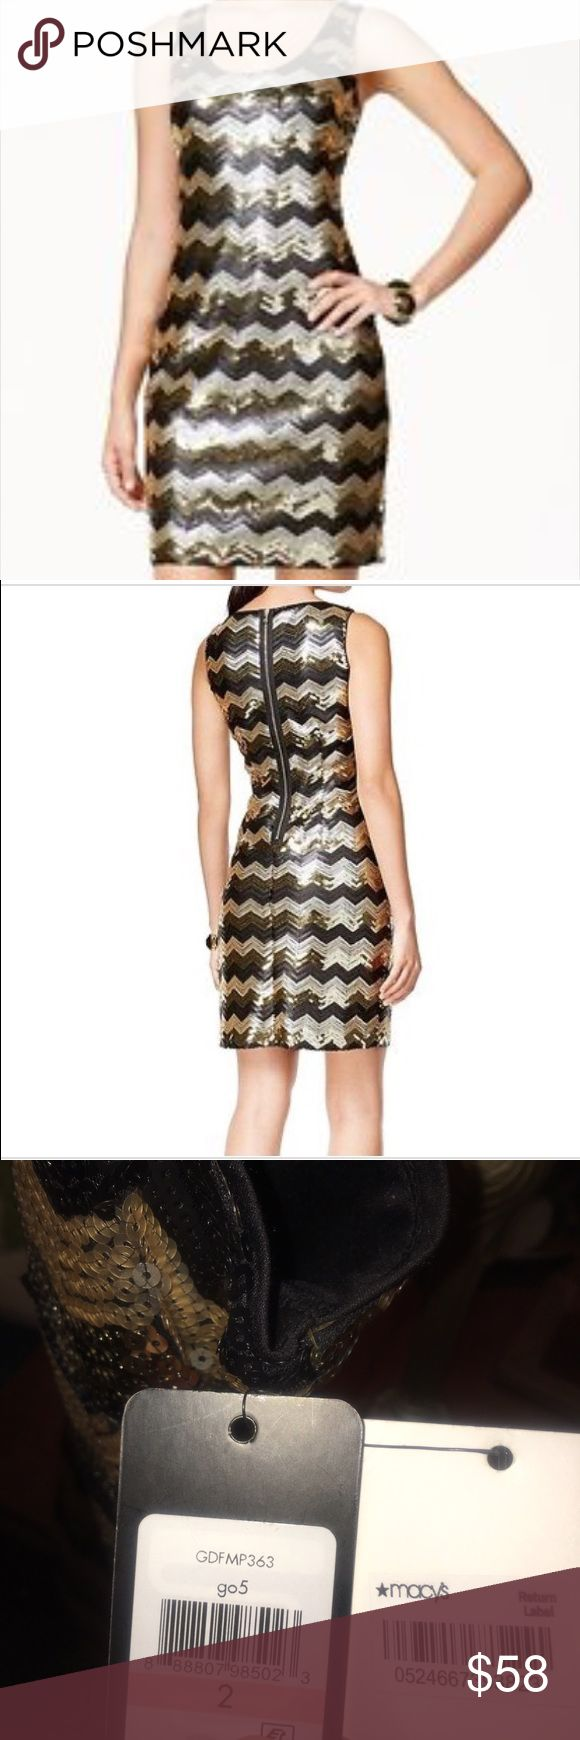 NWT GUESS Gold&Black Chevron/Sequin Dress, Size 2 NWT GUESS Gold & Black Chevron Print Sequin Women's Cocktail Dress, Size 2. Retailed and bought at Macy's, $158.00 (still has Macy's return labels on tags). Gold zipper up back. Dress completely lined and 100% polyester. This is a beautiful, fun dress and can be worn for several occasions. 100% smoke free home. Reasonable offers considered. Guess Dresses